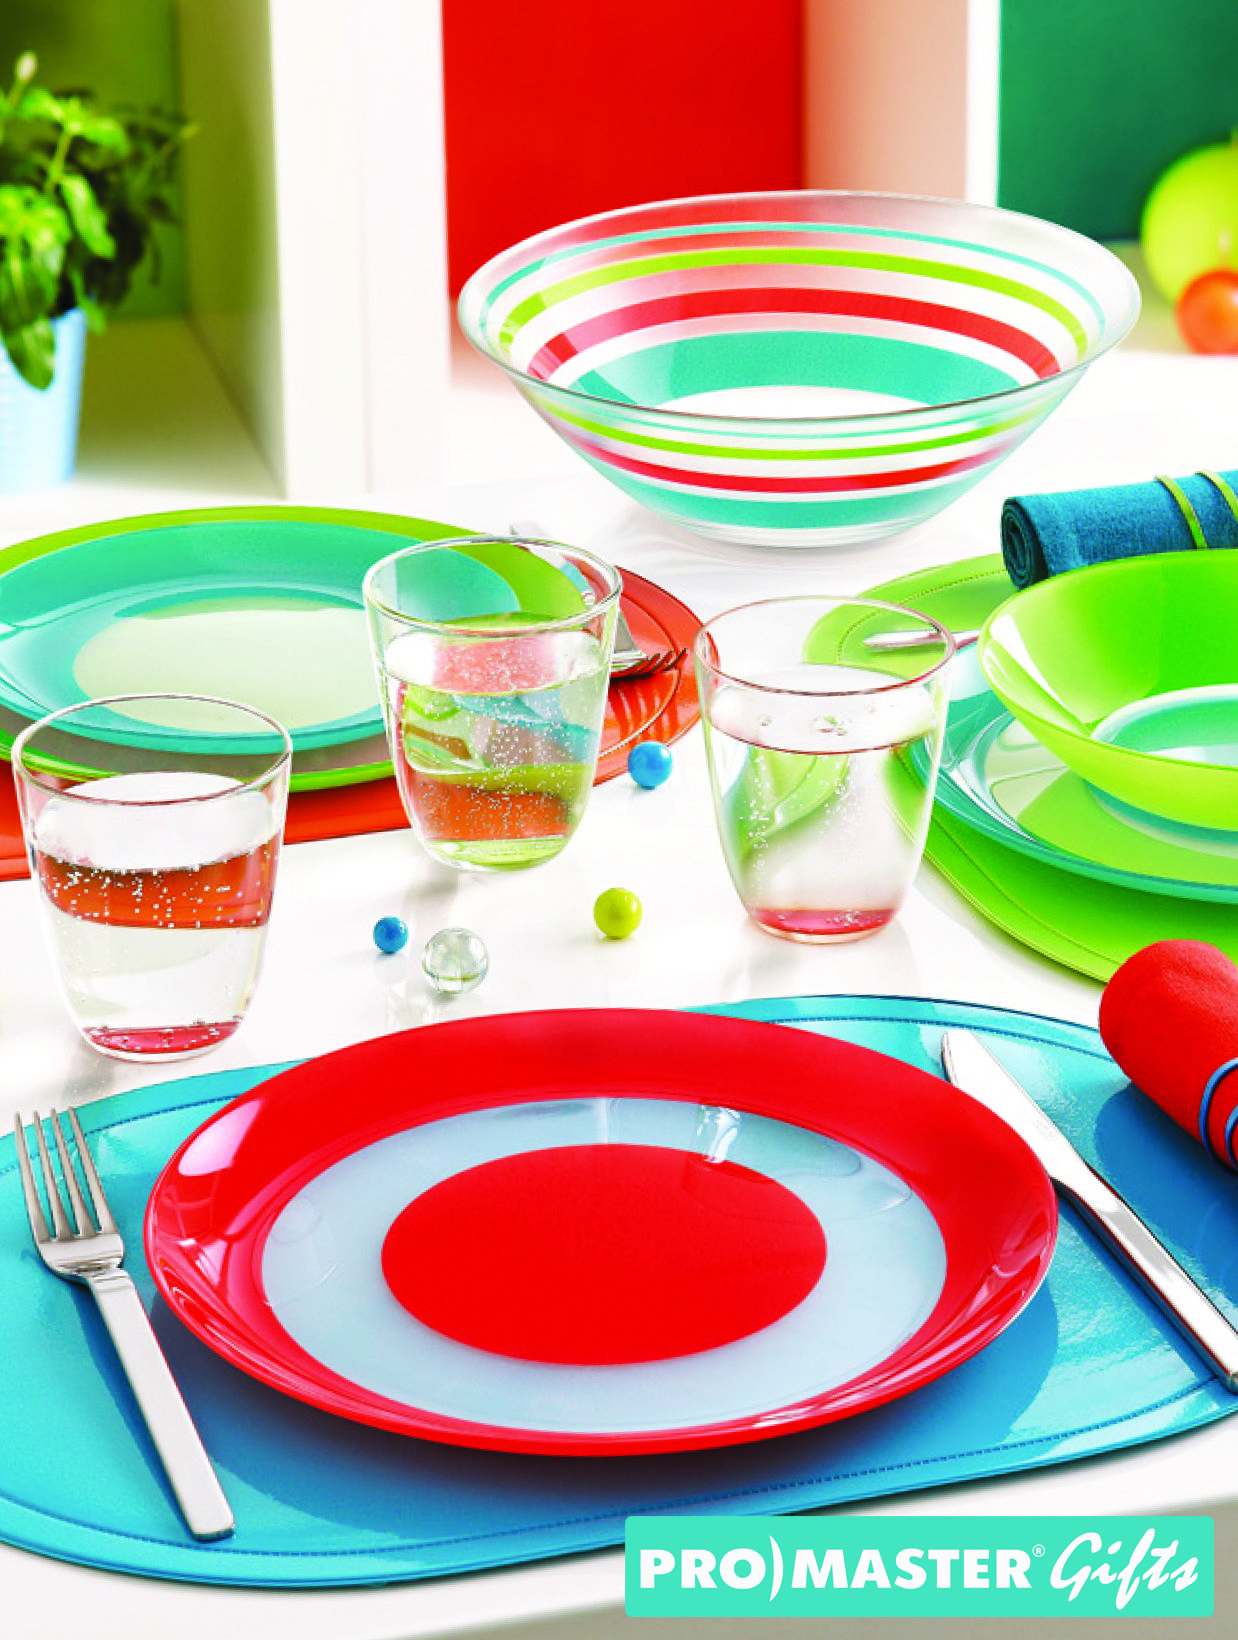 Luminarc J7670 19-Piece Simply Colors Glass Dinnerware Set Dishwasher safe Microwave  sc 1 st  Pinterest : colourful dinnerware - pezcame.com